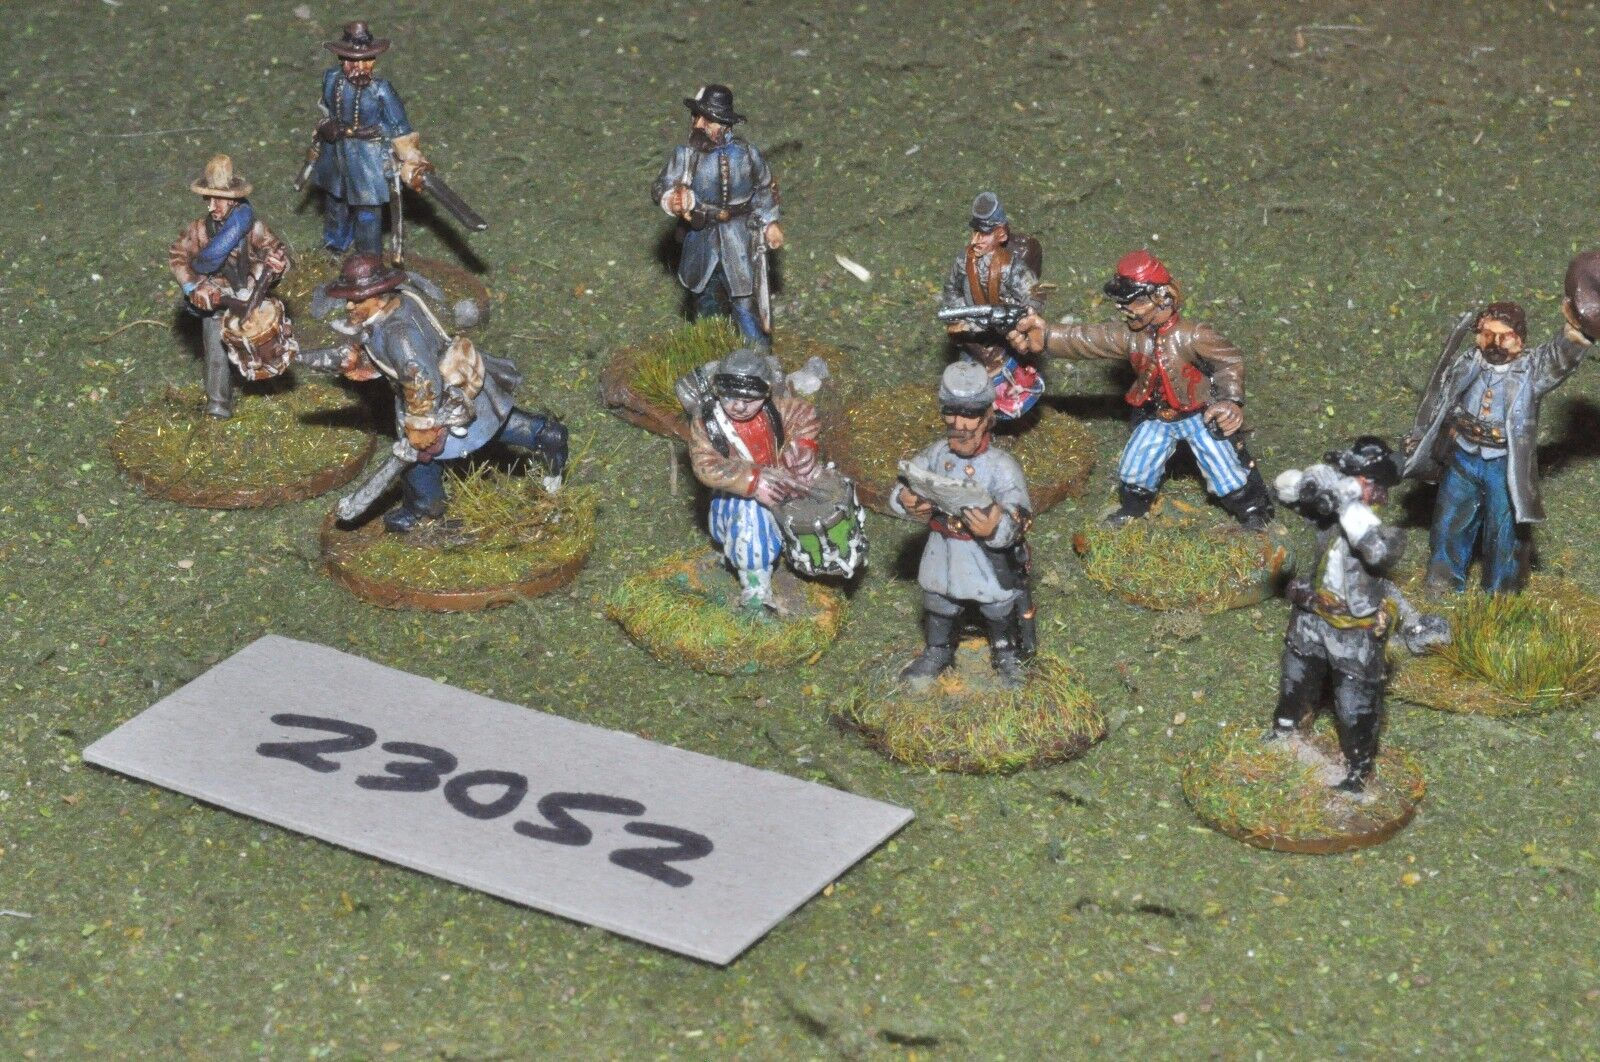 25mm ACW   confederate - markers 10 figures - inf (23052)